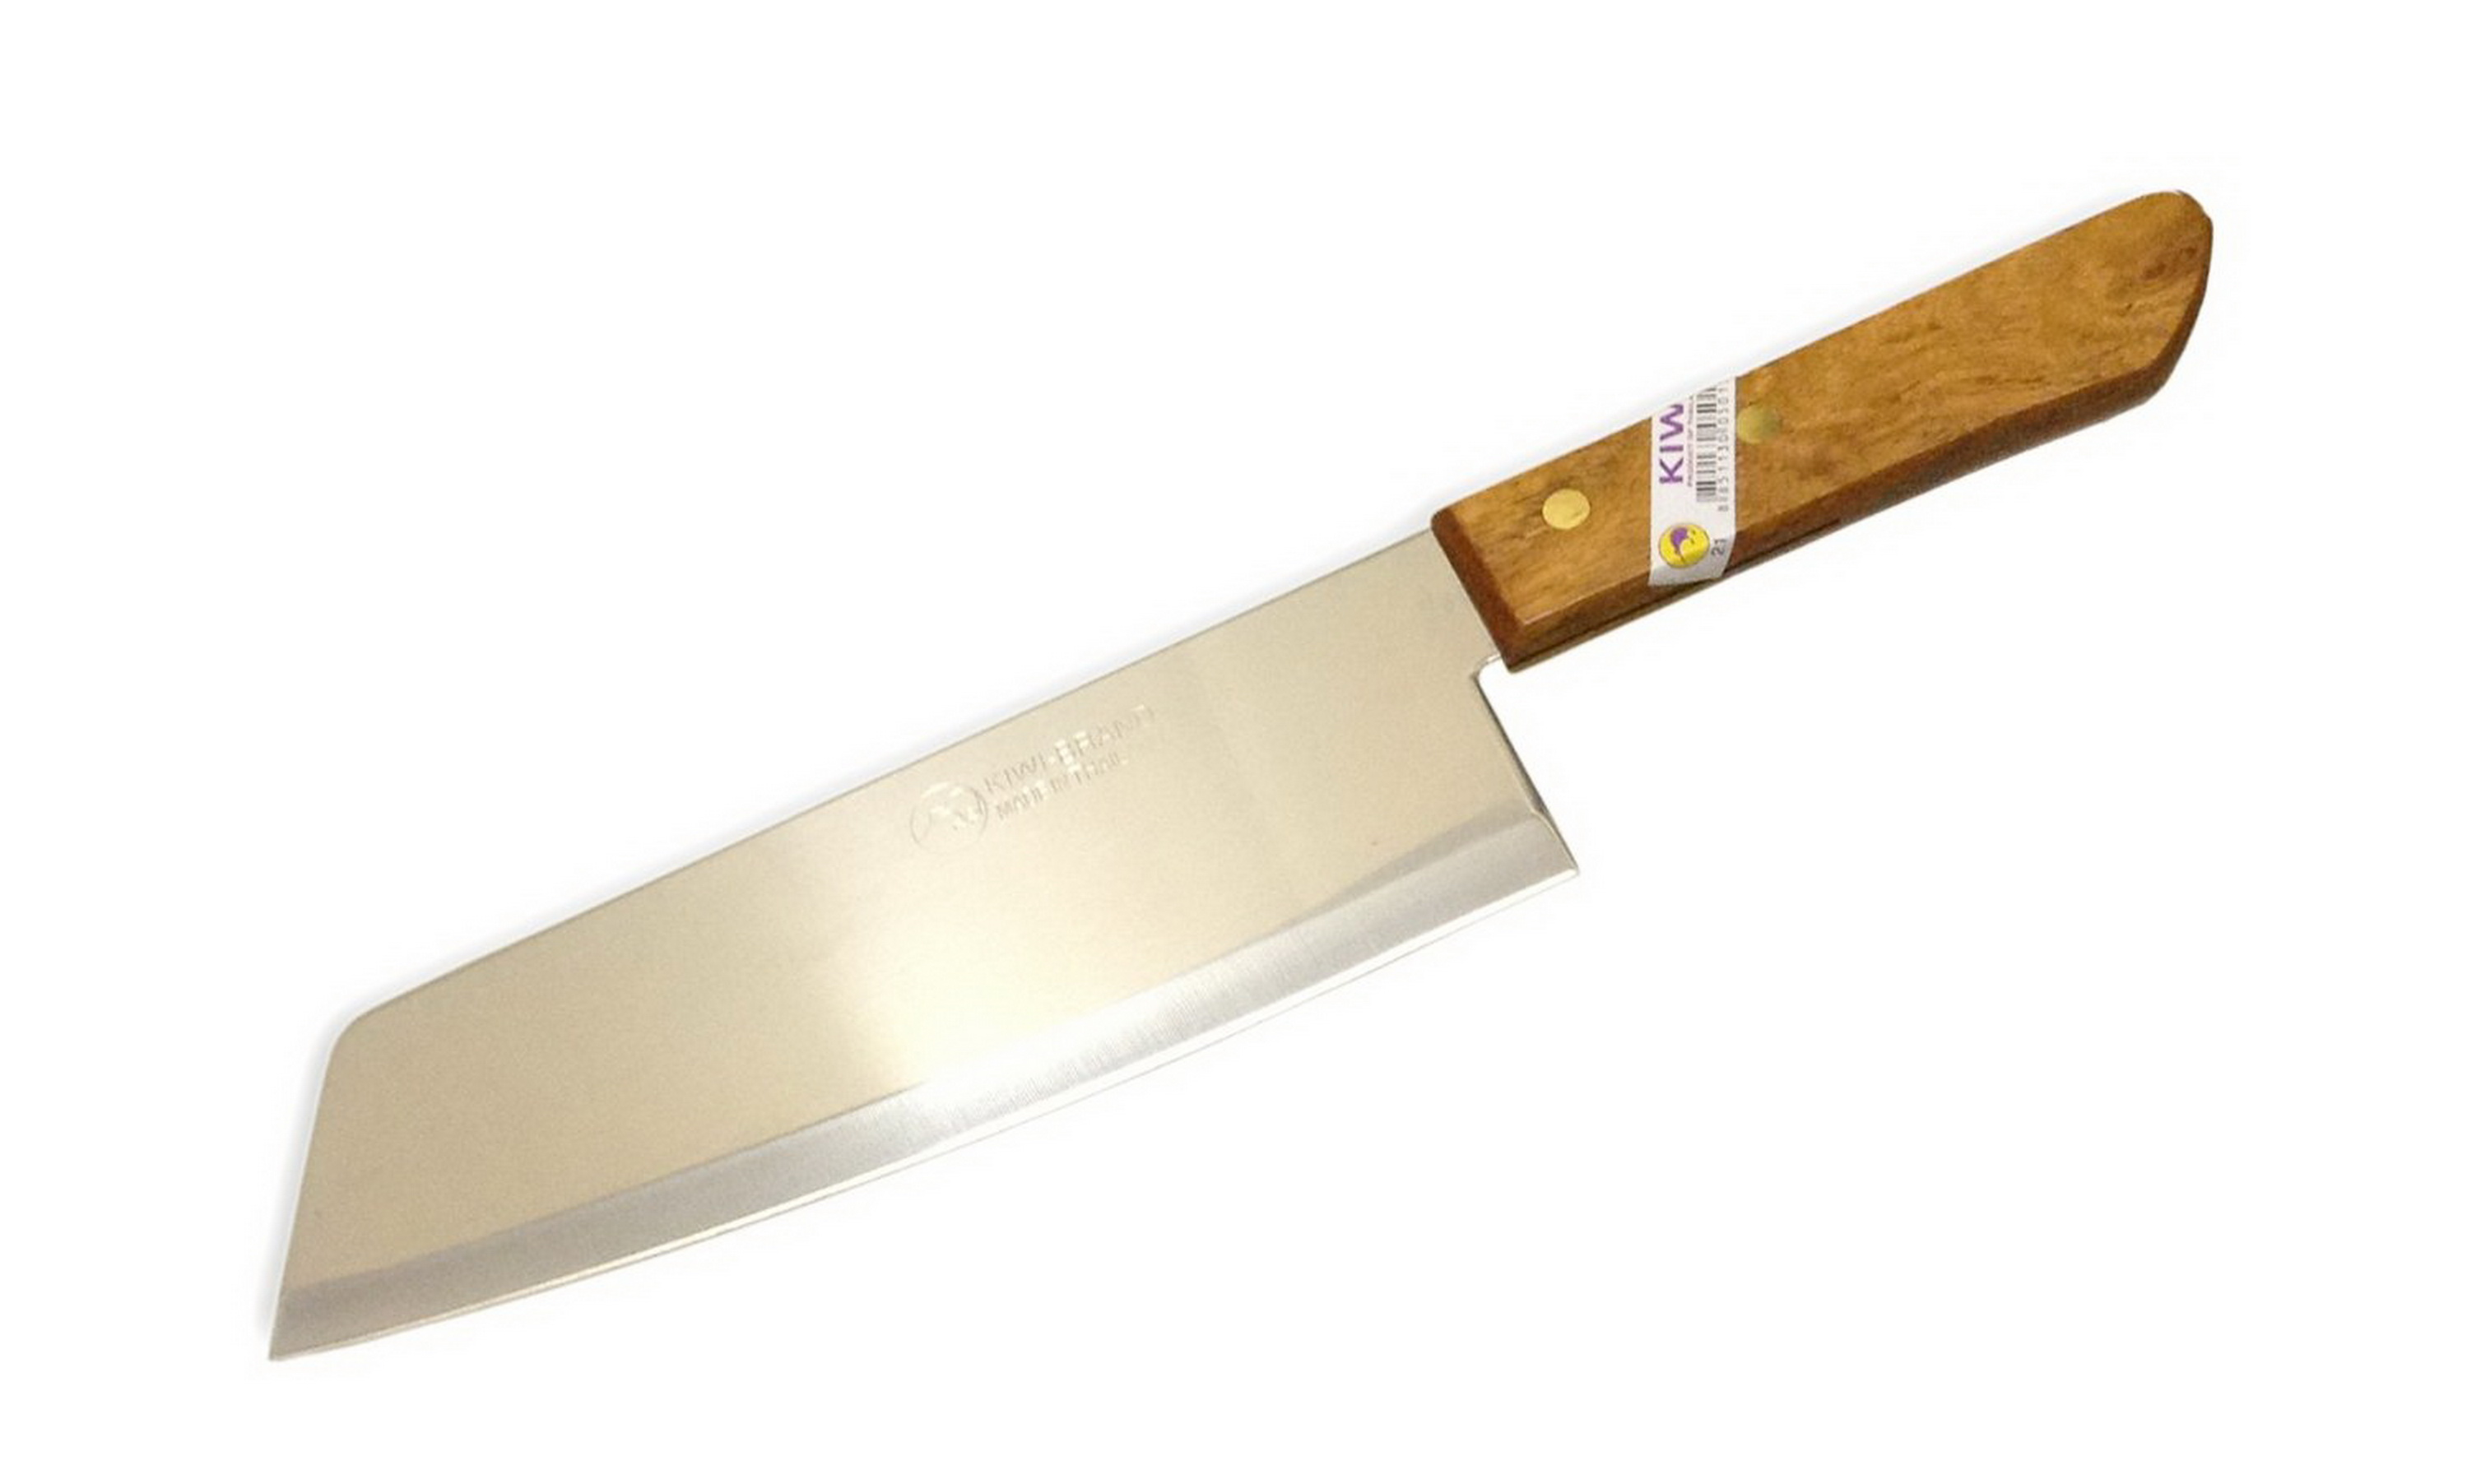 8 quot cook knife wood handle kiwi brand high quality for